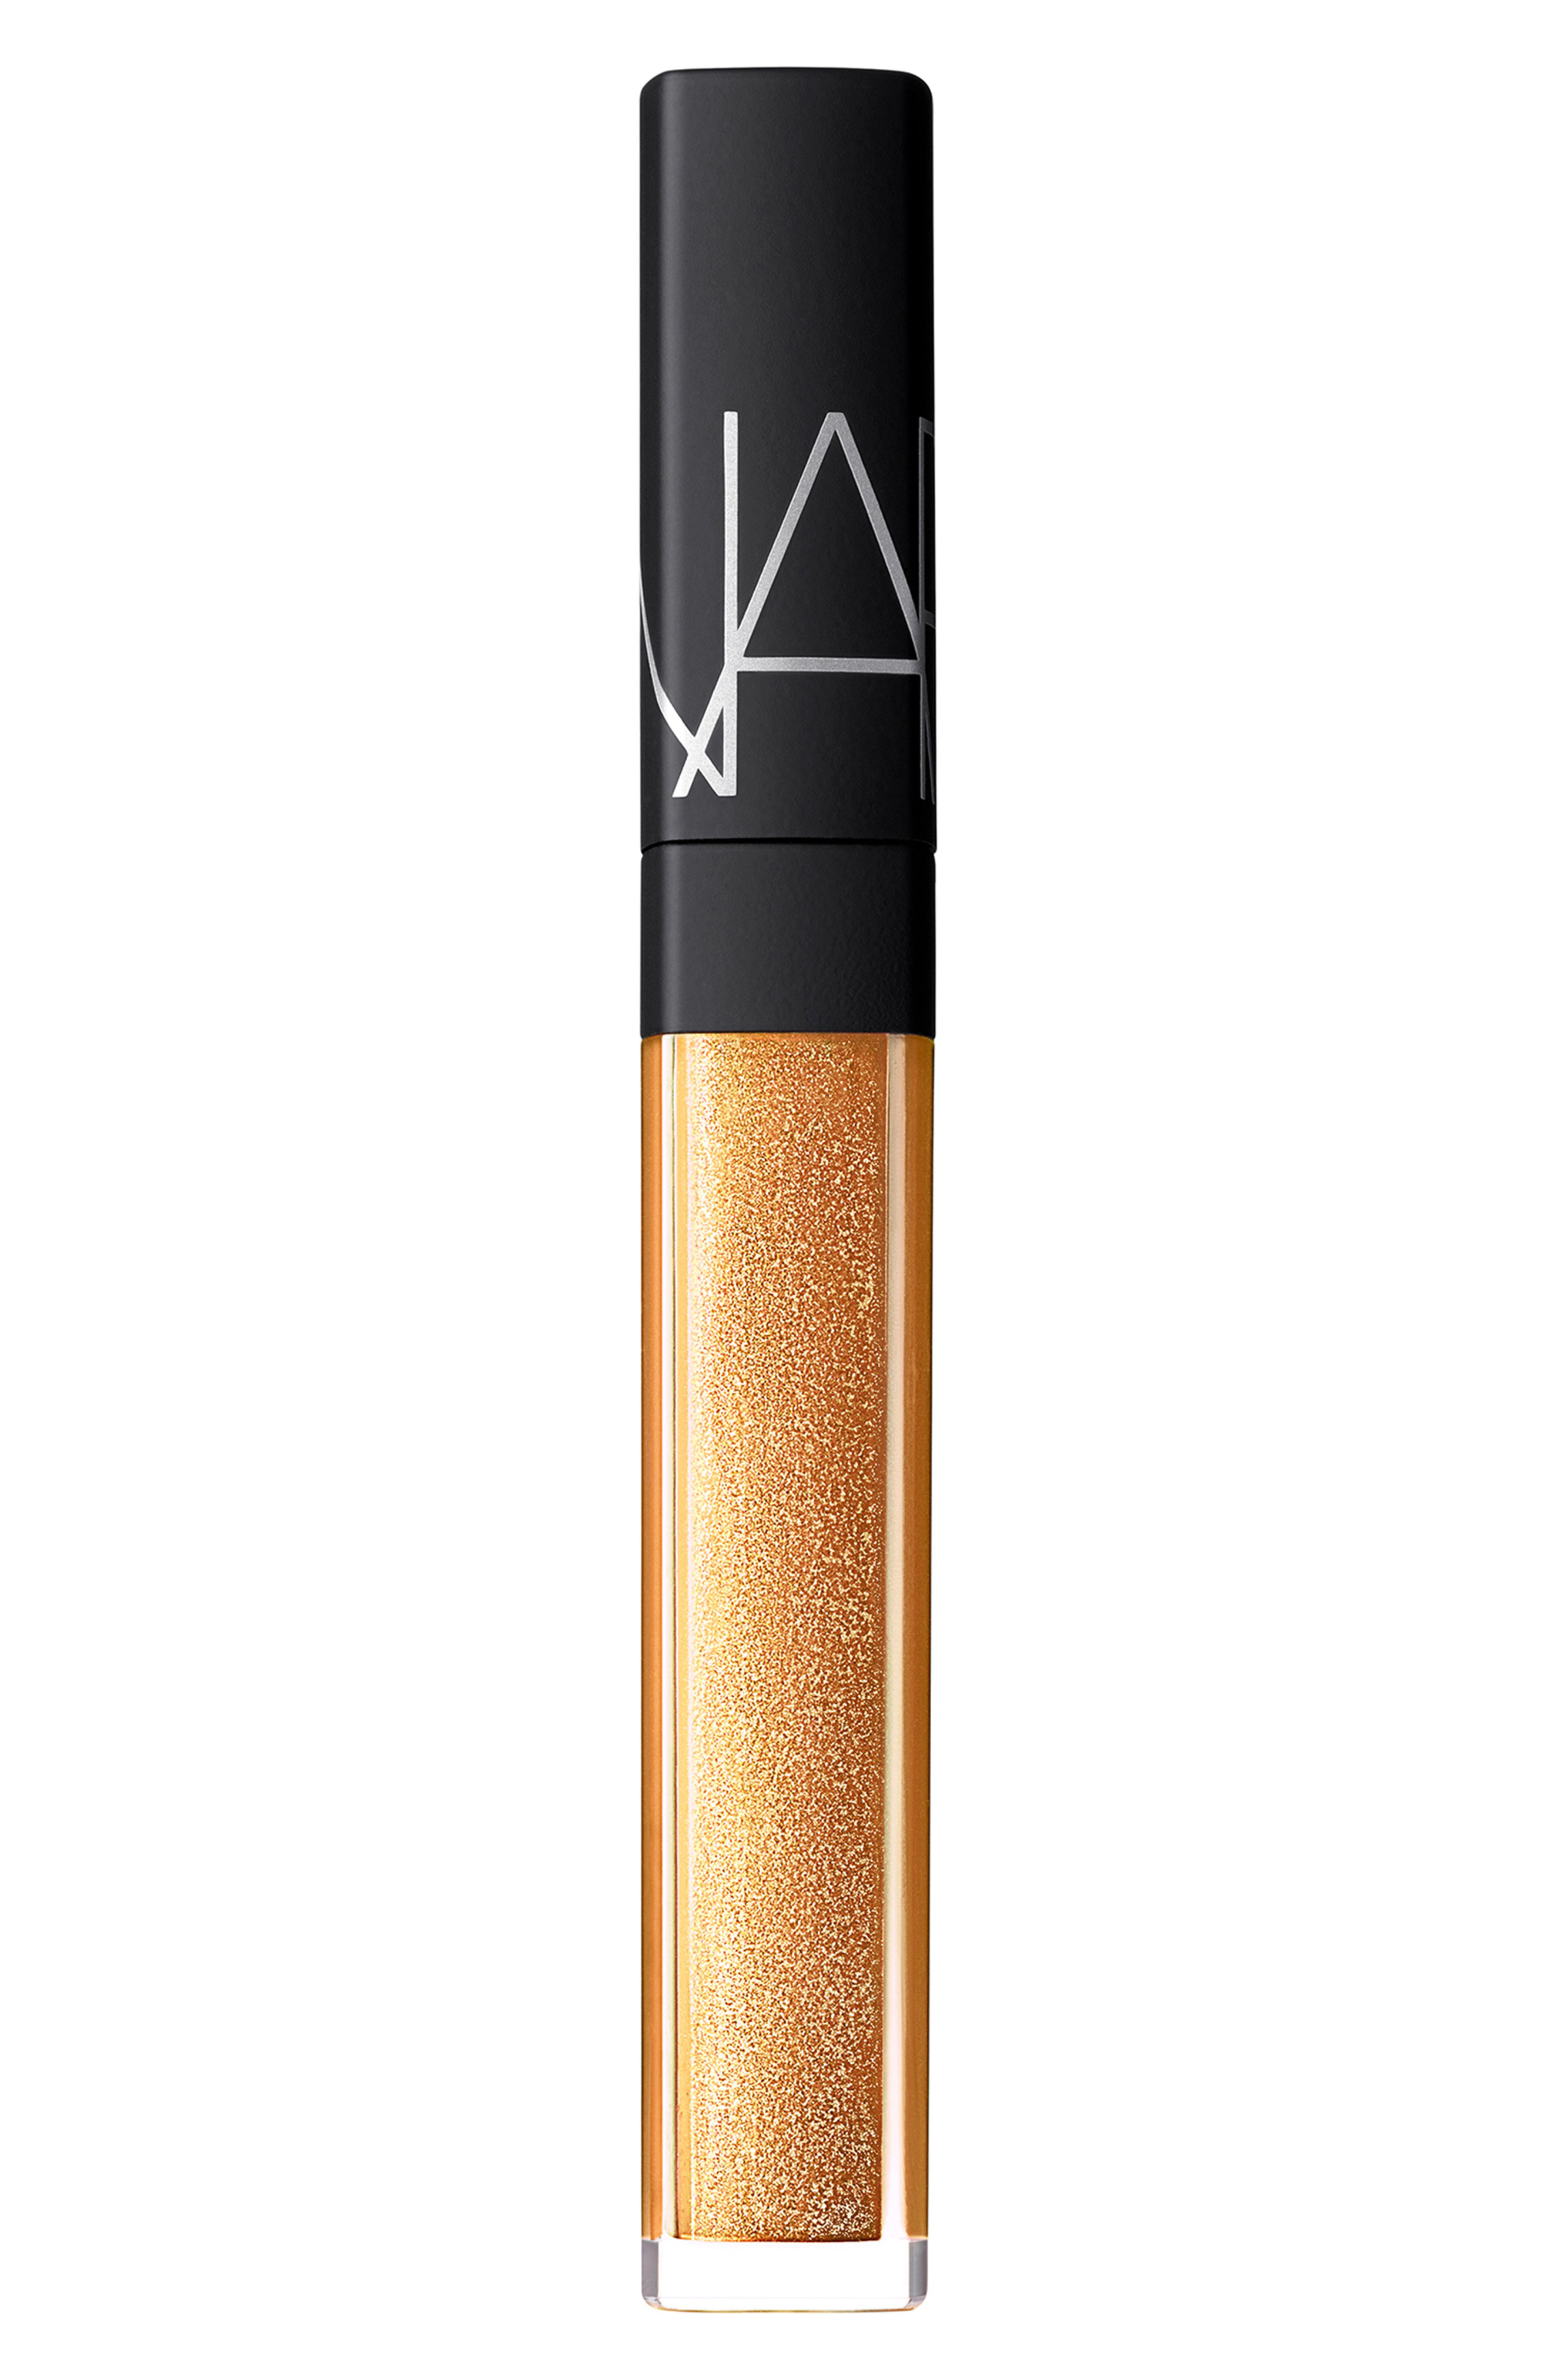 Nars Lip Gloss - Sexy Time  Modesens-6389